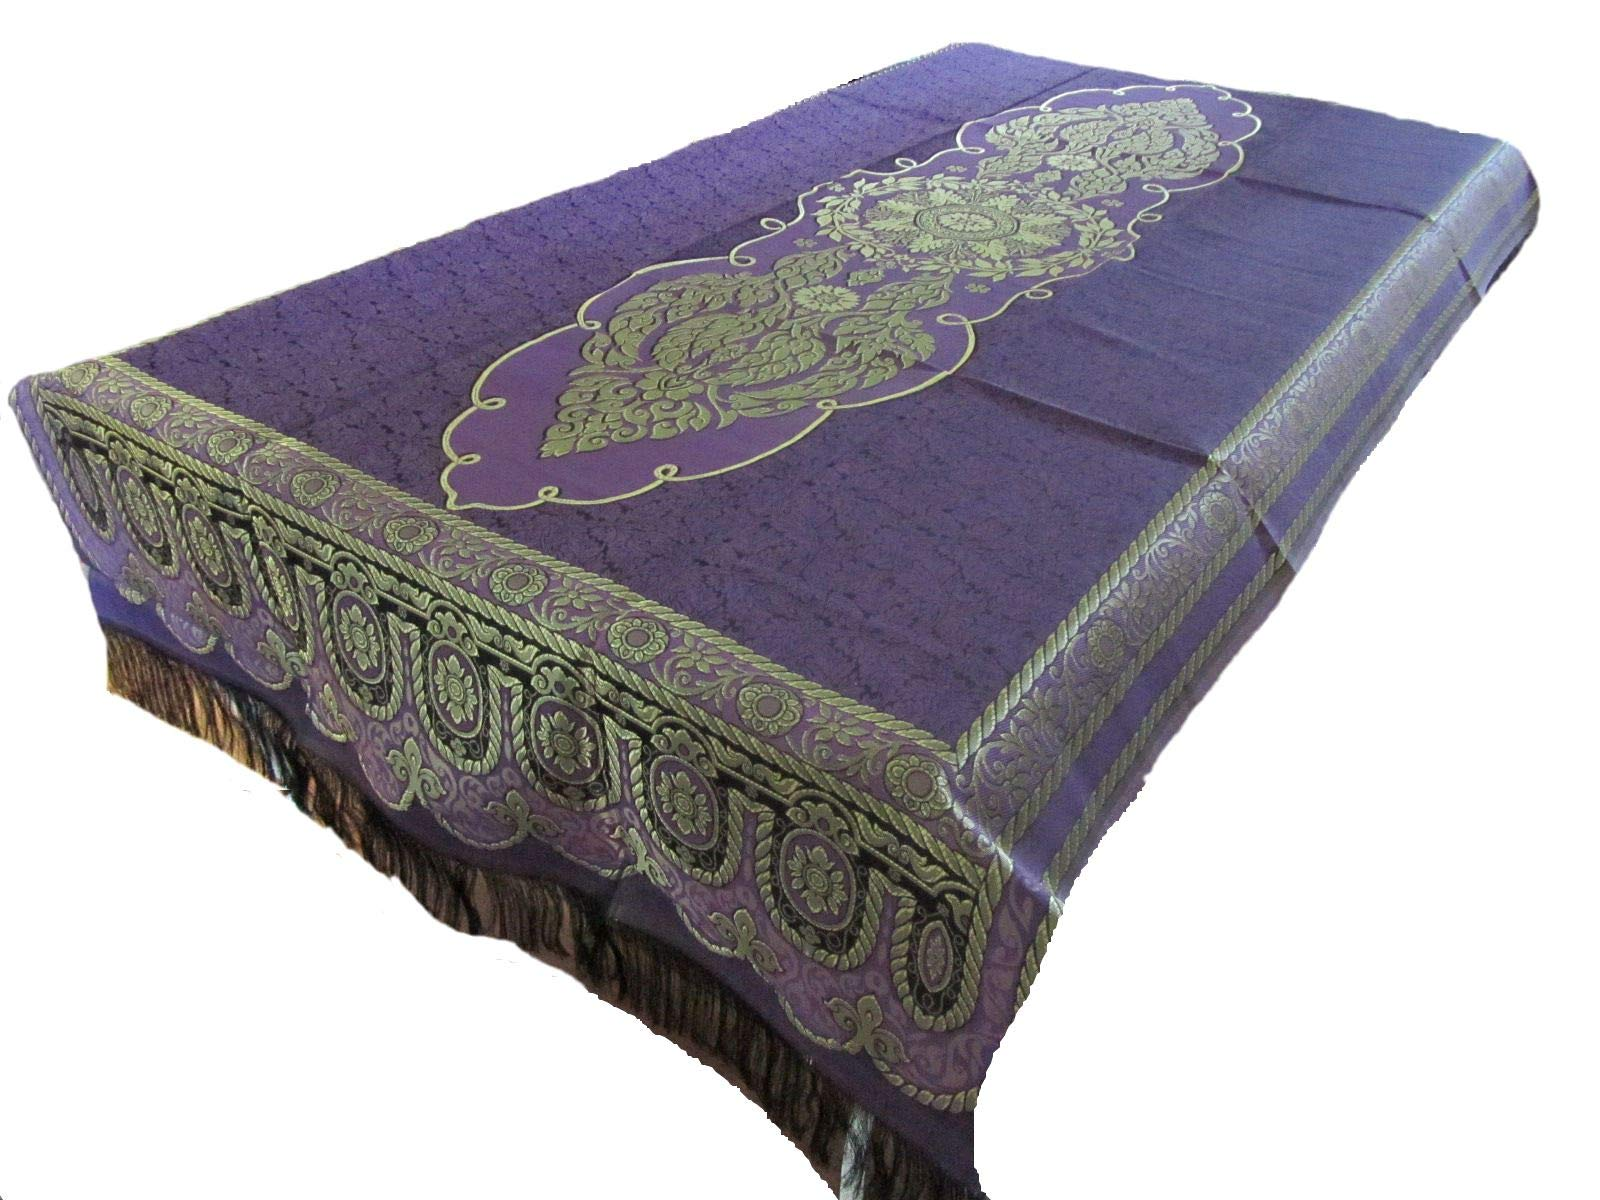 Blue Orchid Gold Floral Vine Table Cloth with Fringe Luxurious Polyester Embroidered Reversible Thai Tablecloth for Rectangular Tables 80'' x 40''